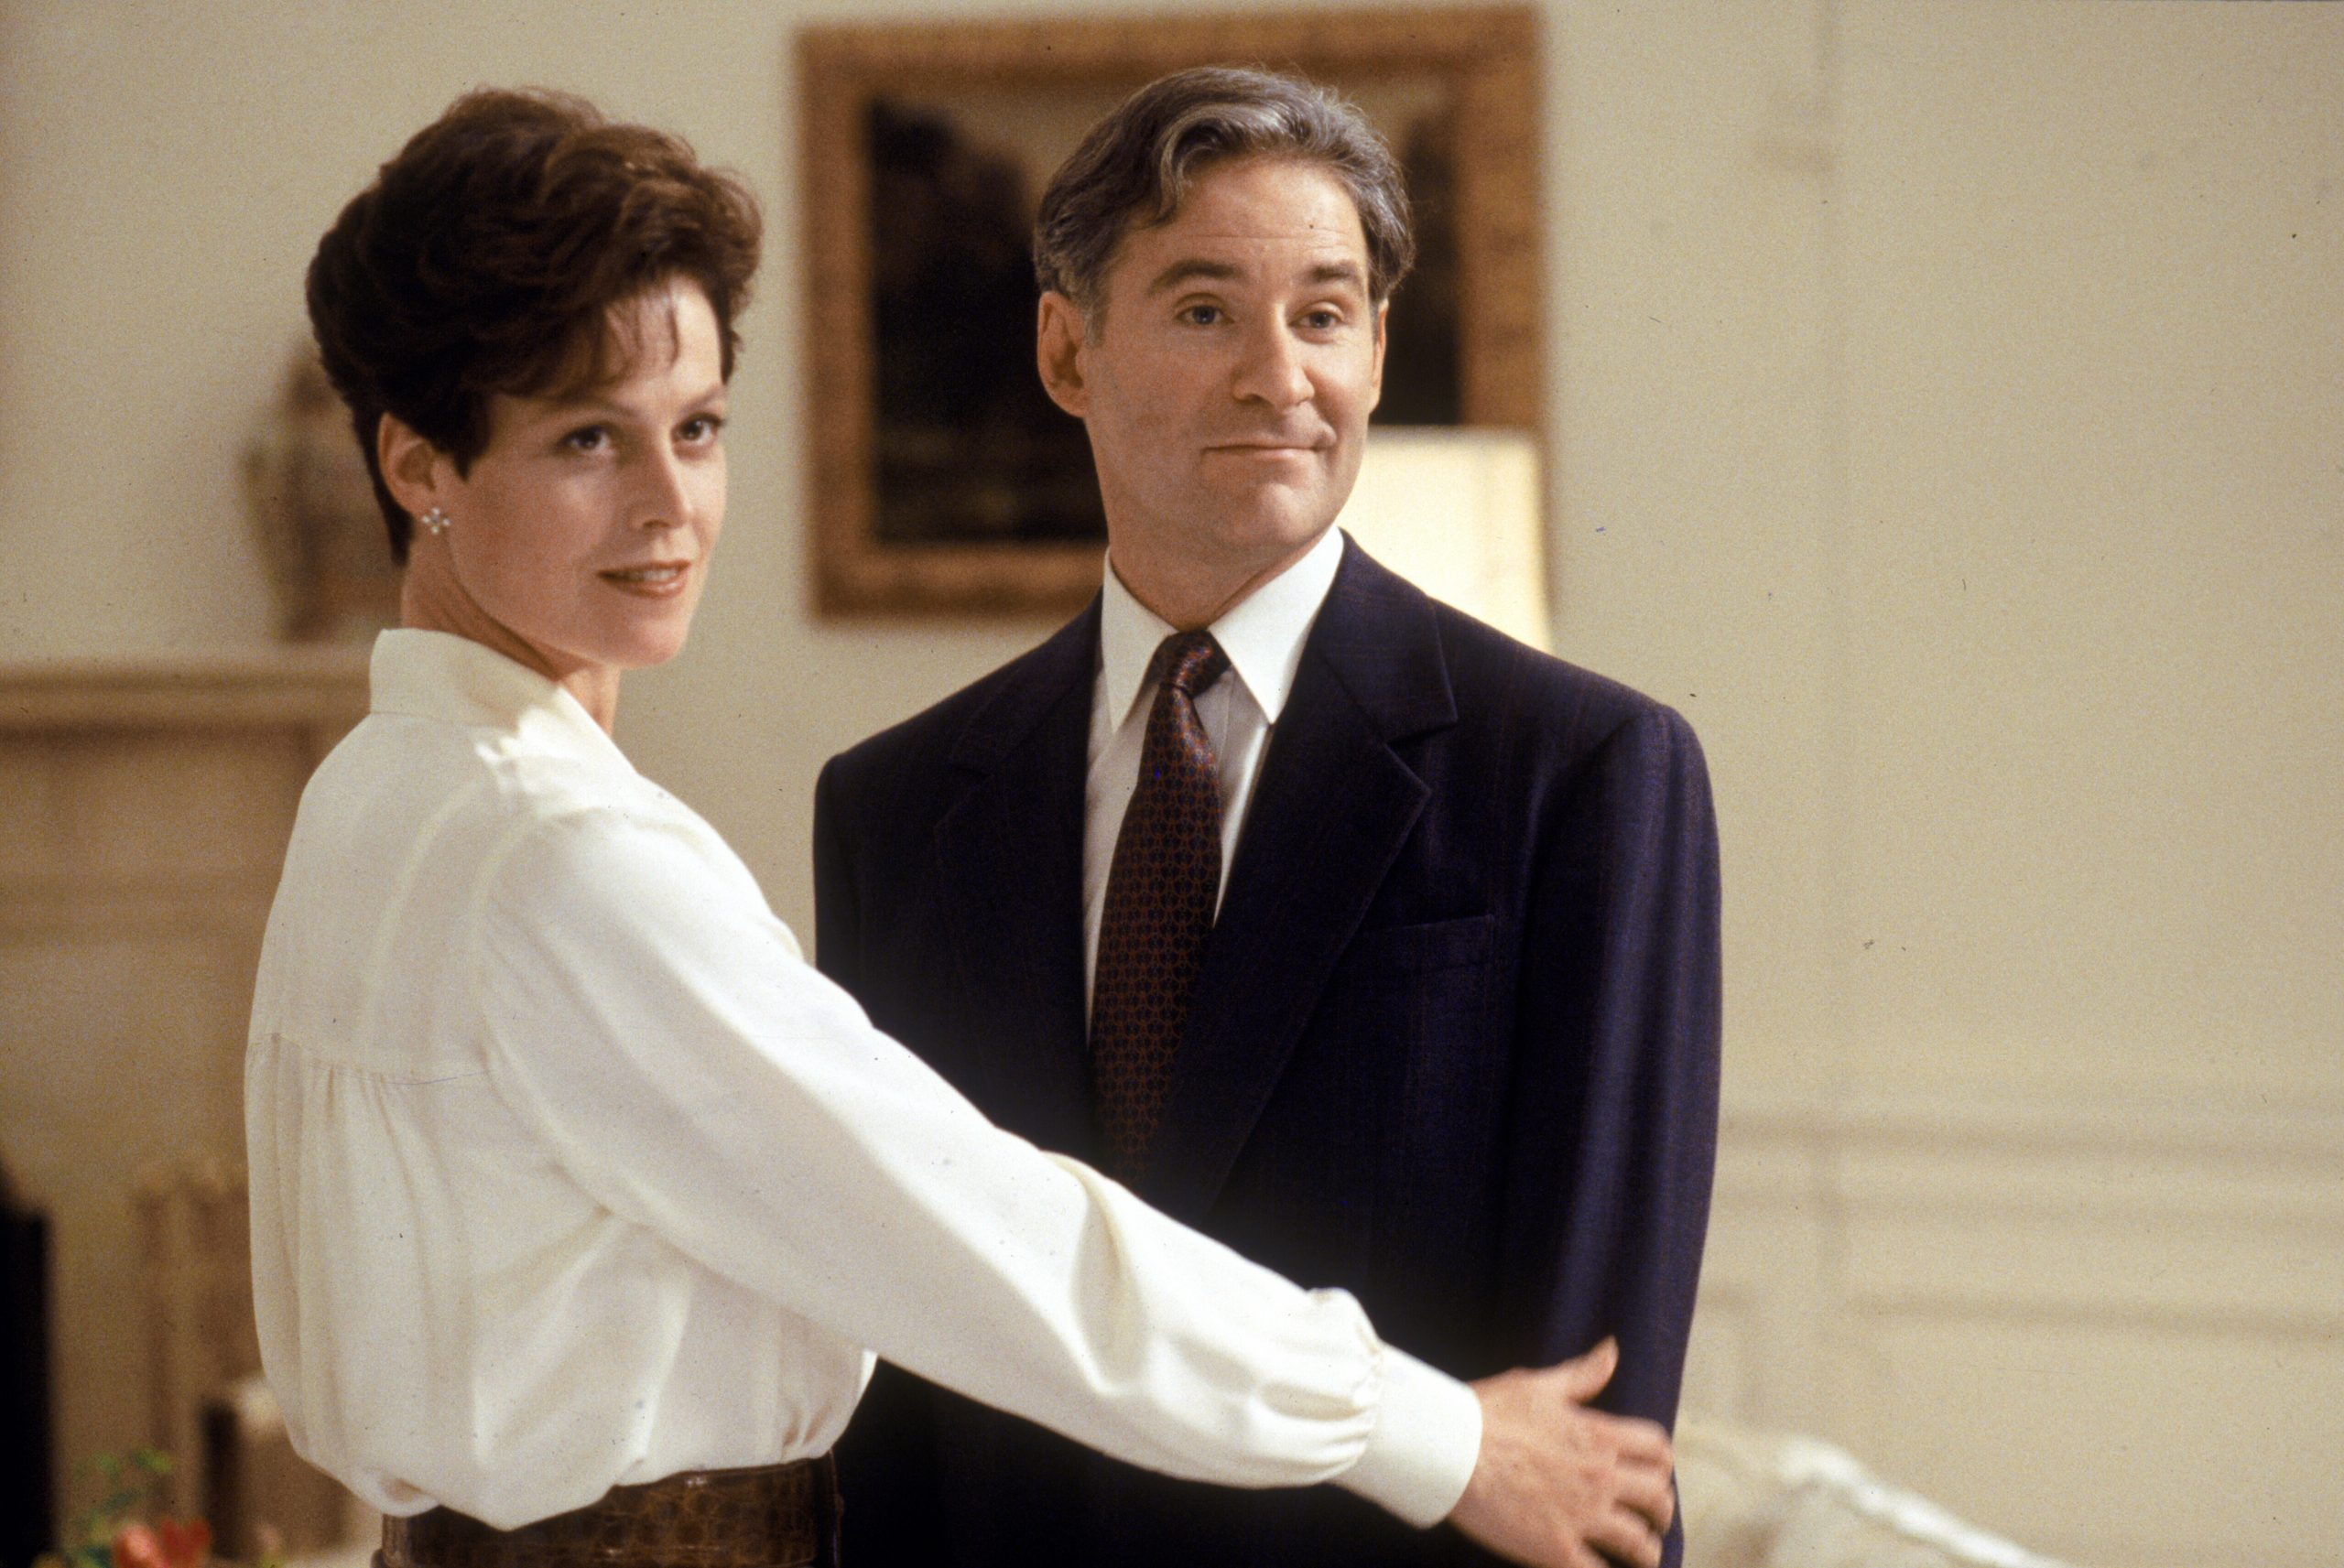 dave sigourney weaver kevin kline scaled 1 20 Things You Never Knew About Kevin Kline